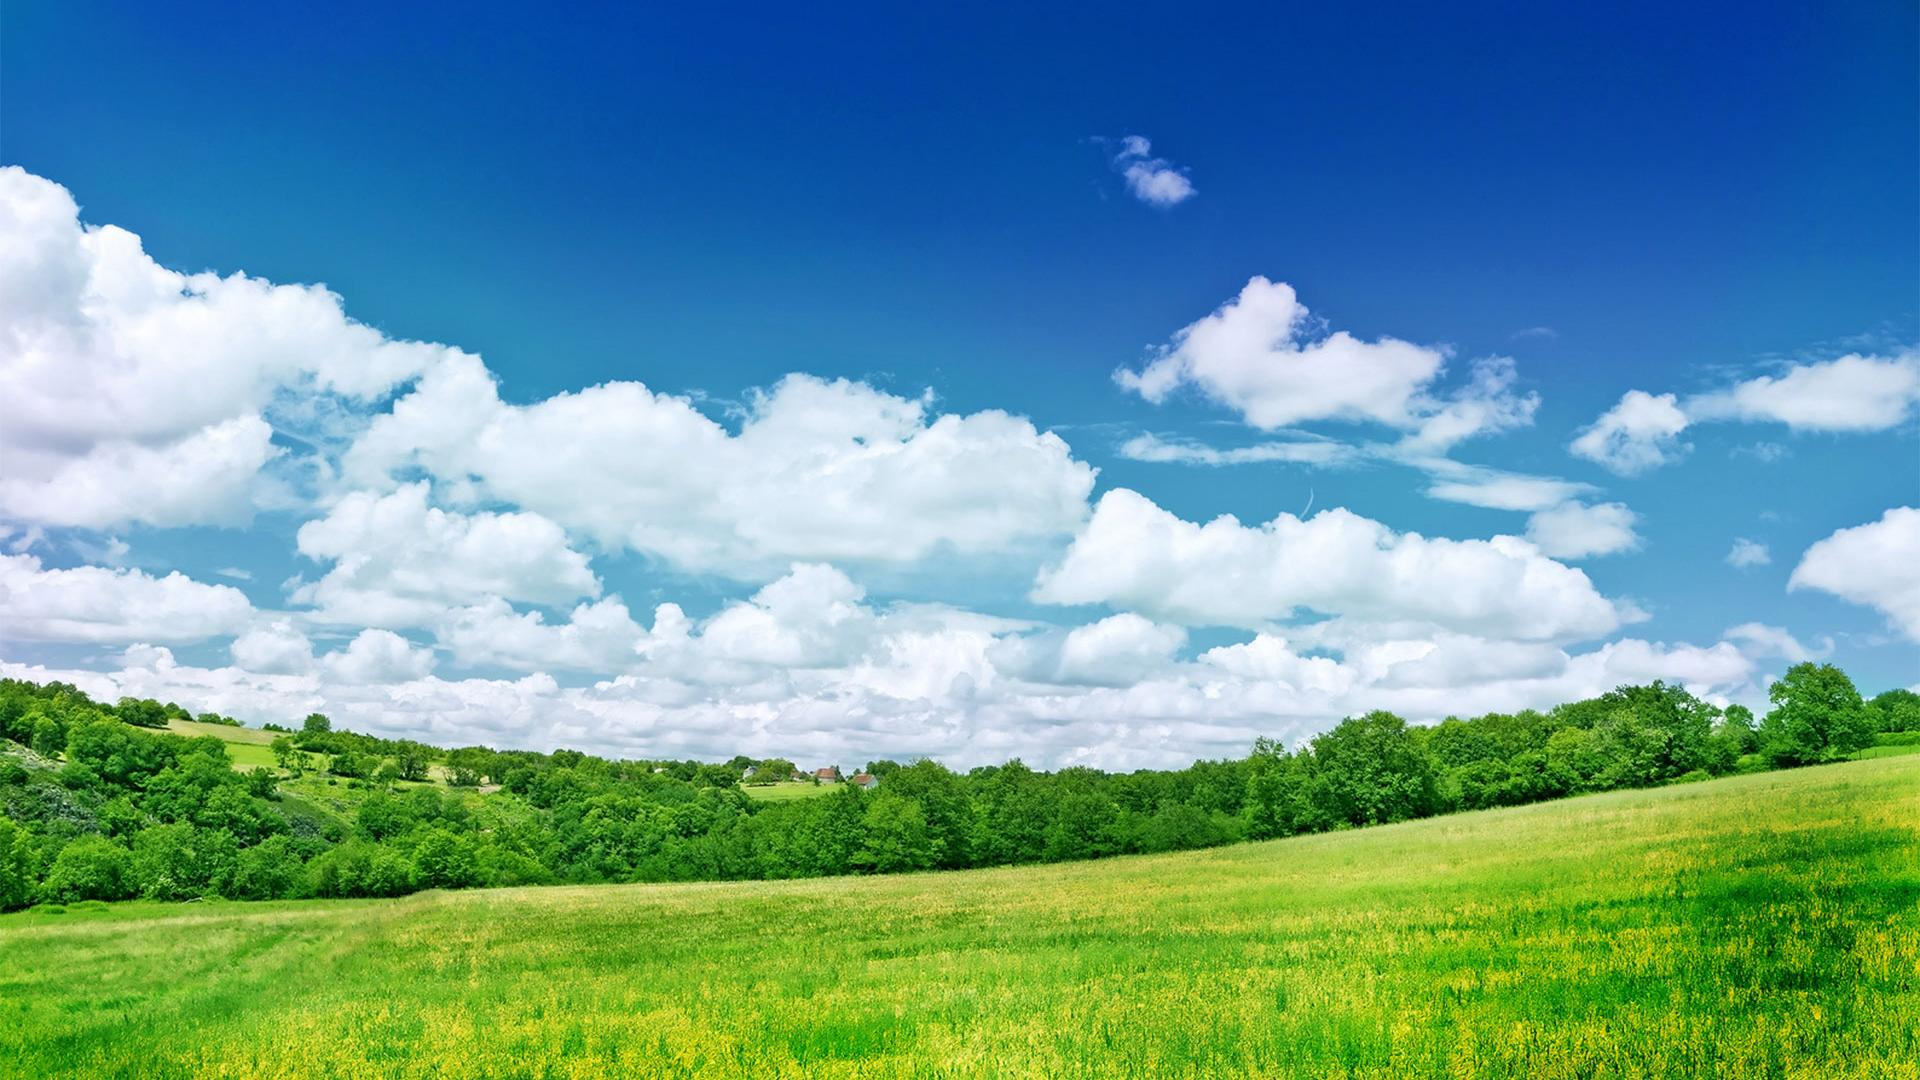 1920x1080 hd fresh summer grassland scenery backgrounds wide wallpapers:1280x800,1440x900,1680x1050 -